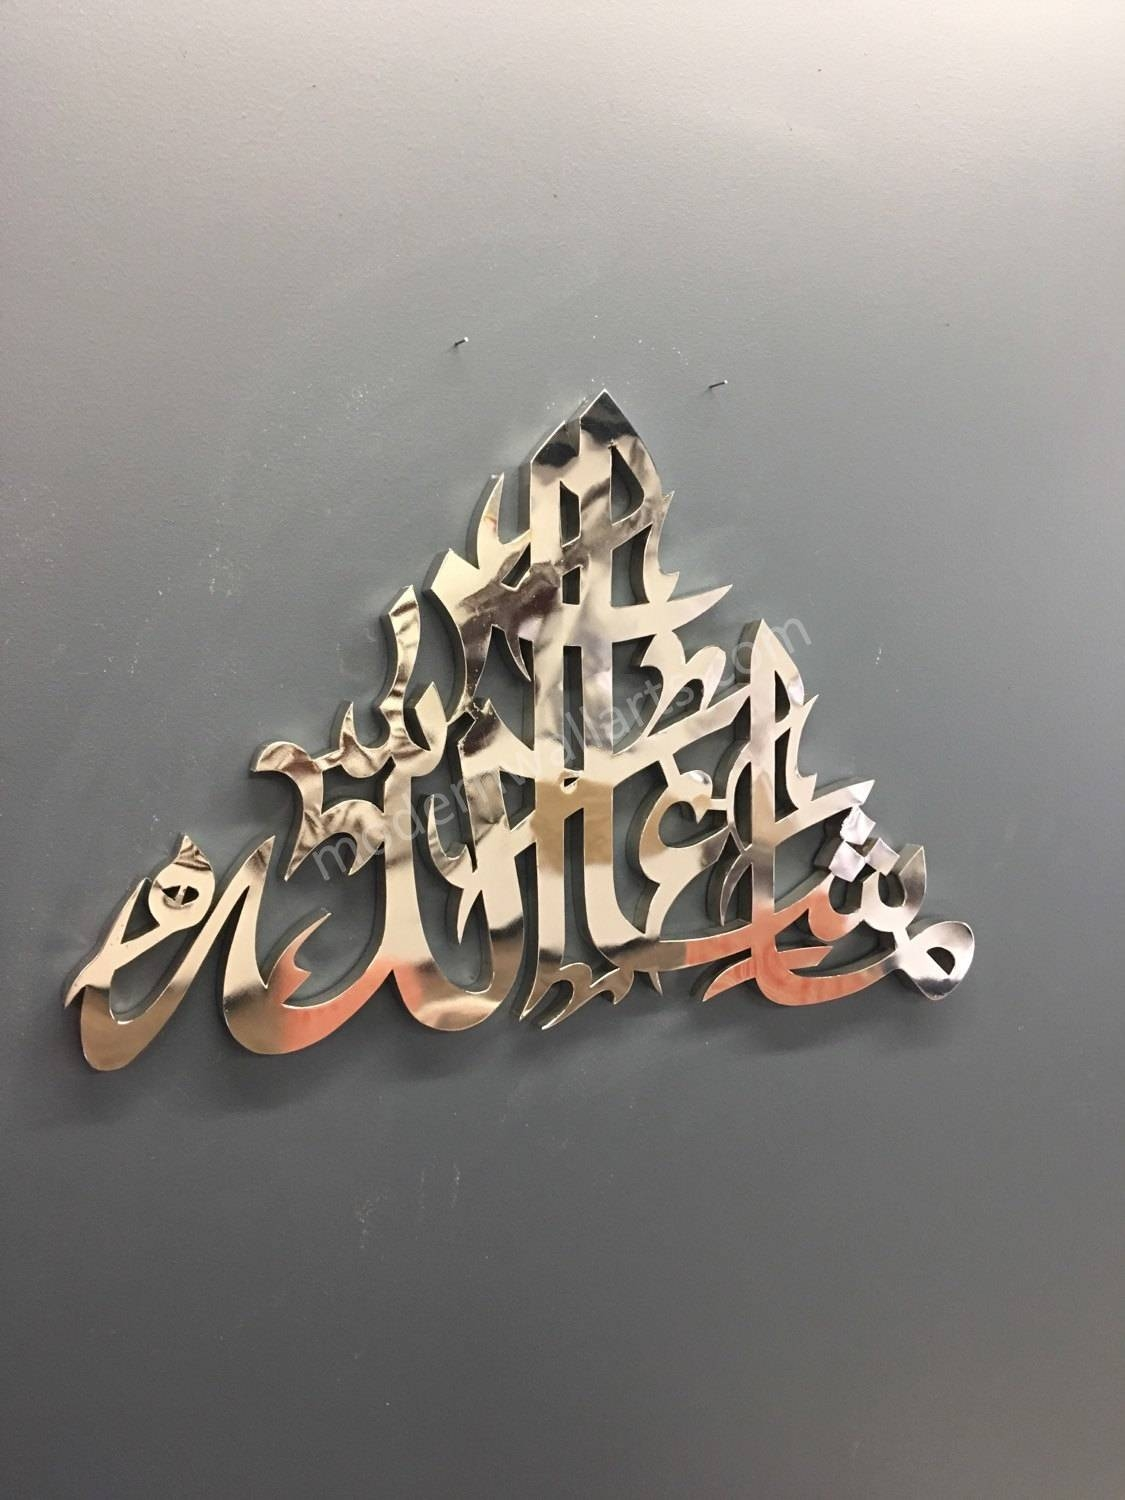 Stainless Steel Triangular Mashallah Modern Islamic Art – Modern In Most Up To Date Islamic Metal Wall Art (View 17 of 20)